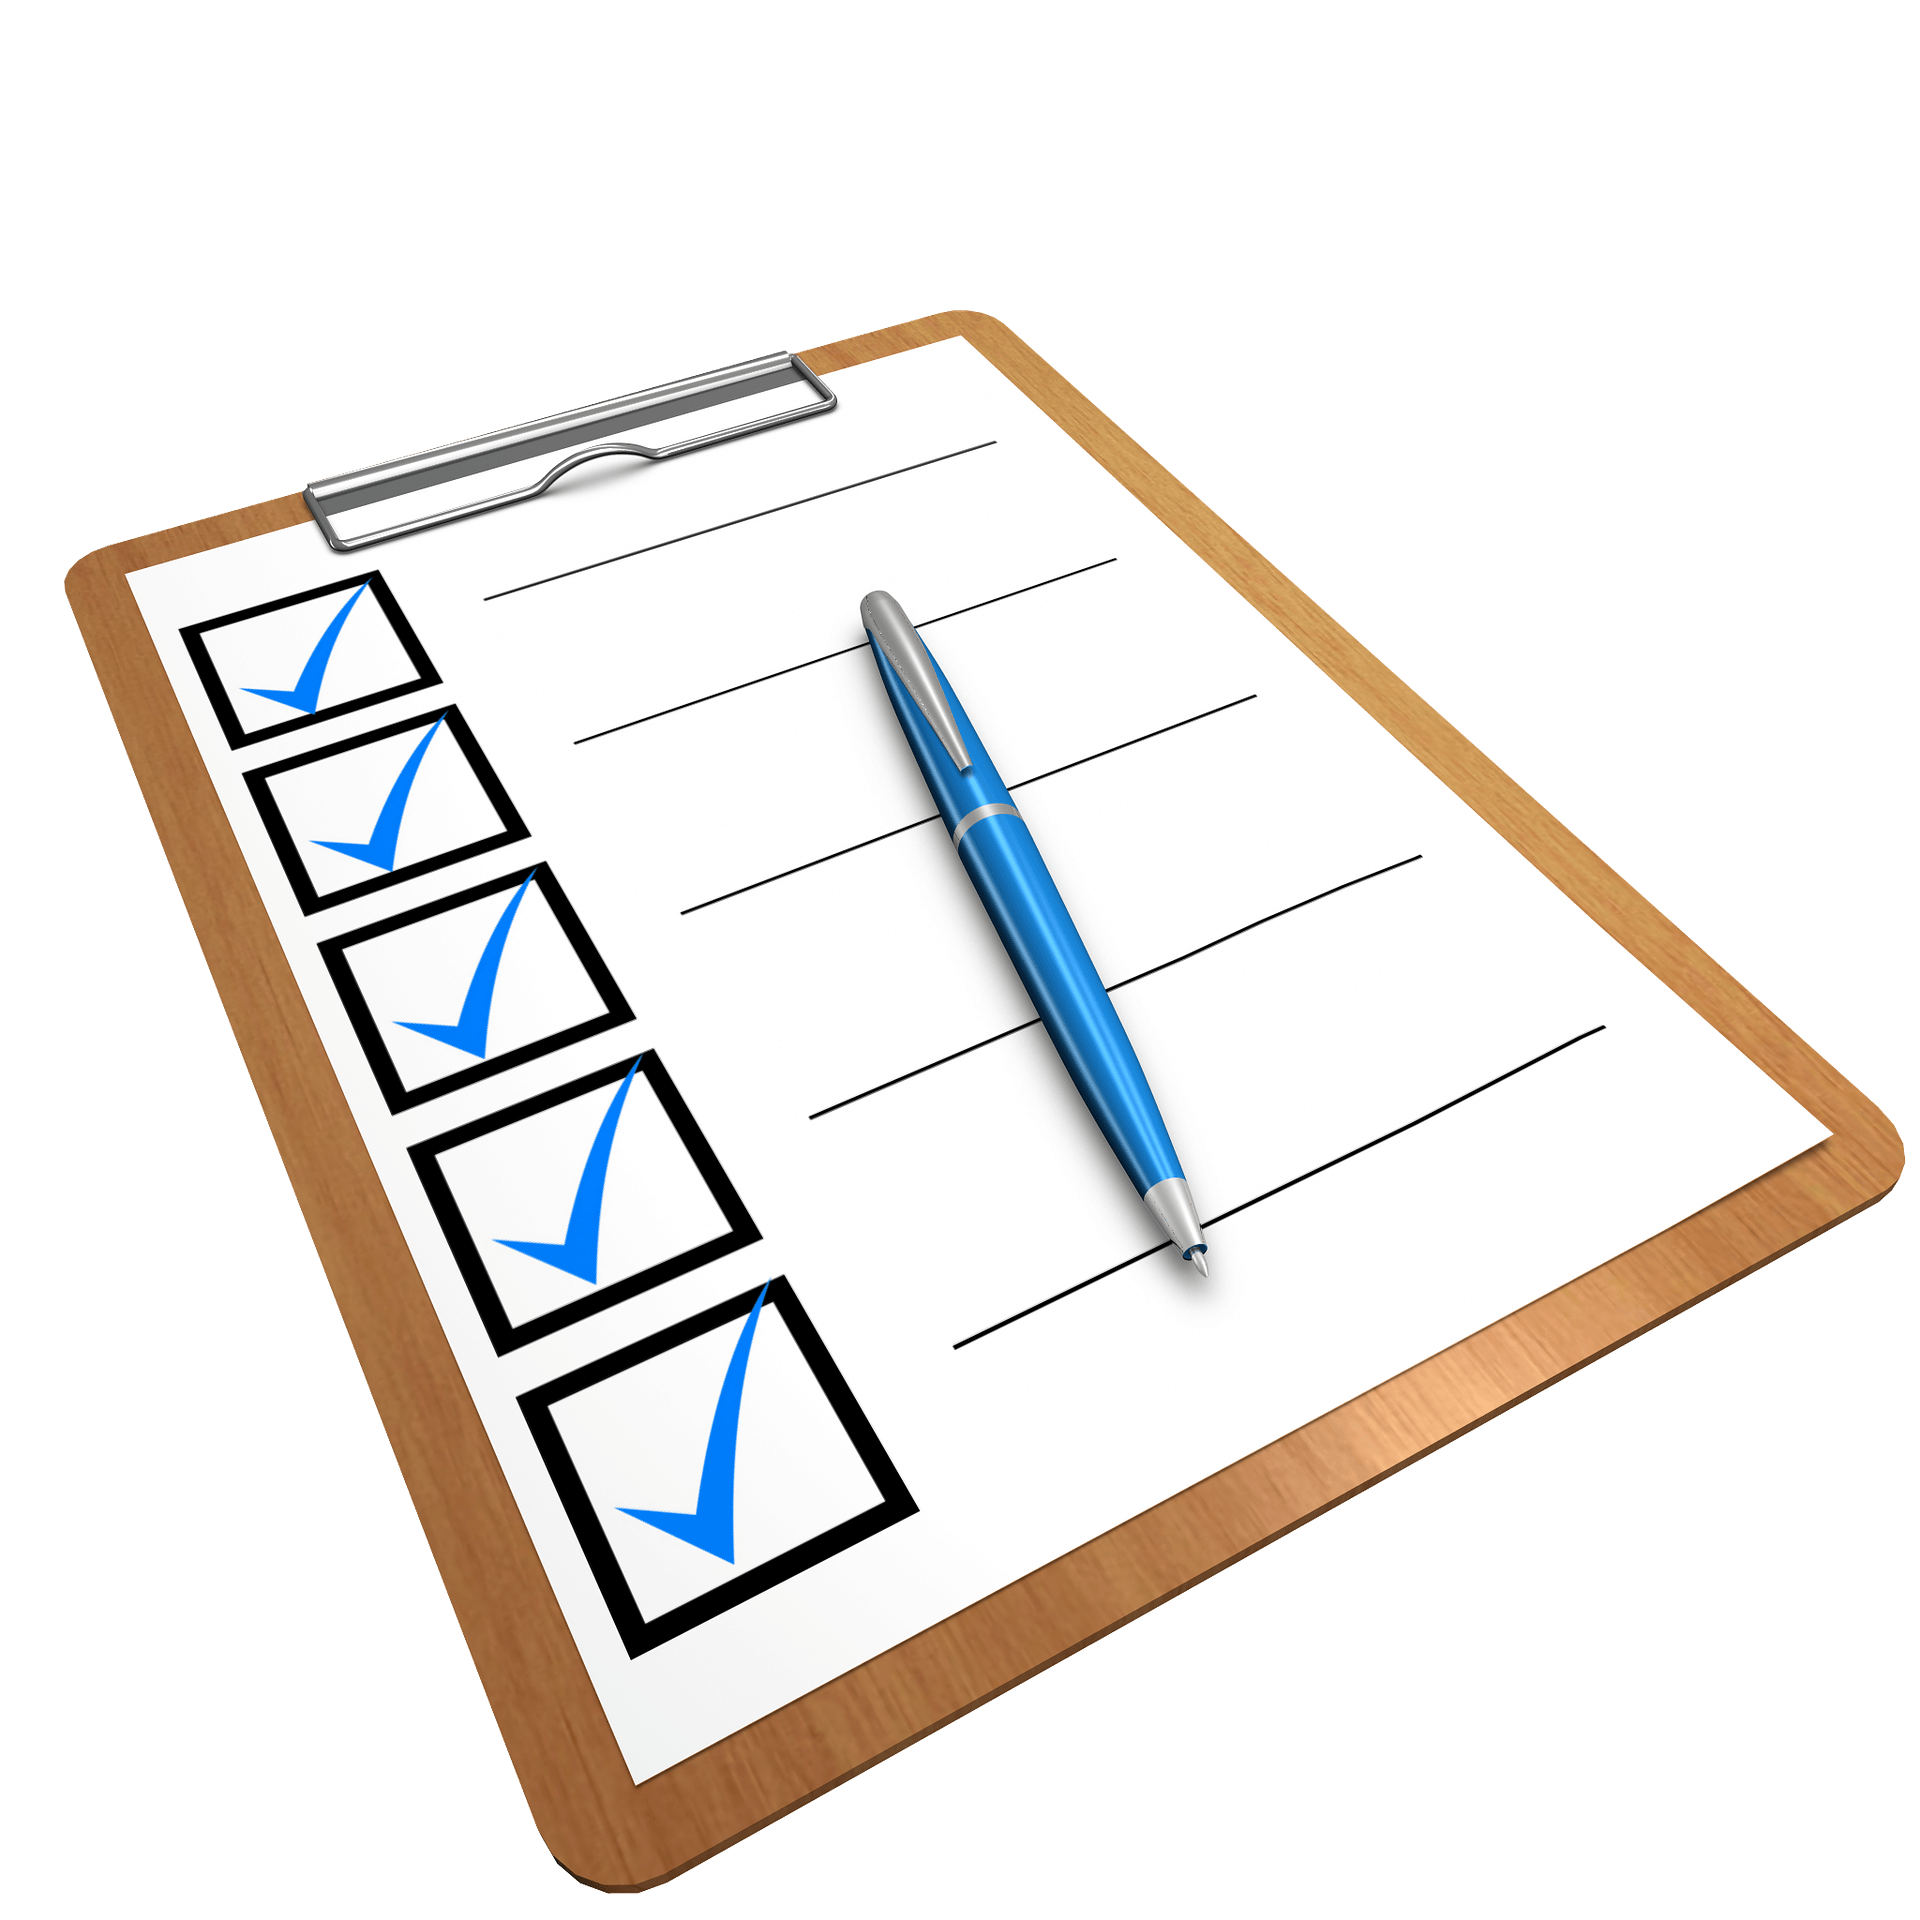 A wooden clipboard with a white checklist on it. The list has 5 blue-colored tick marks in black outlined boxes and a blue and silver writing pen placed over it.